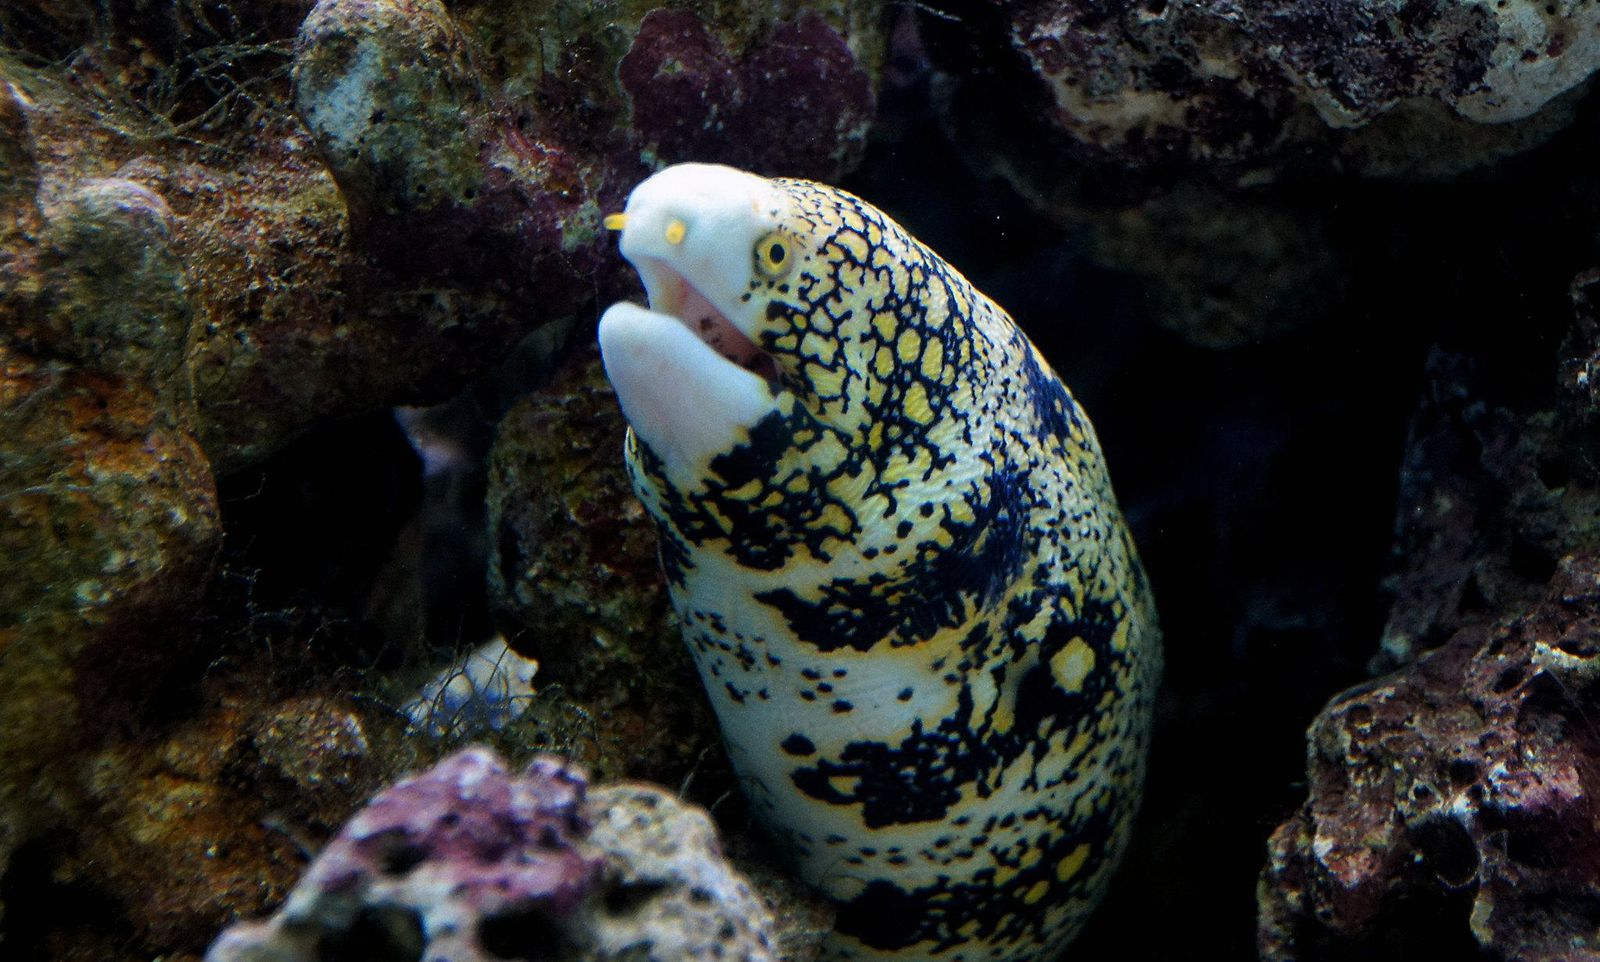 To Capture Prey on Land, This Eel Has an Extendable, Extra Jaw Hidden Inside Its Throat